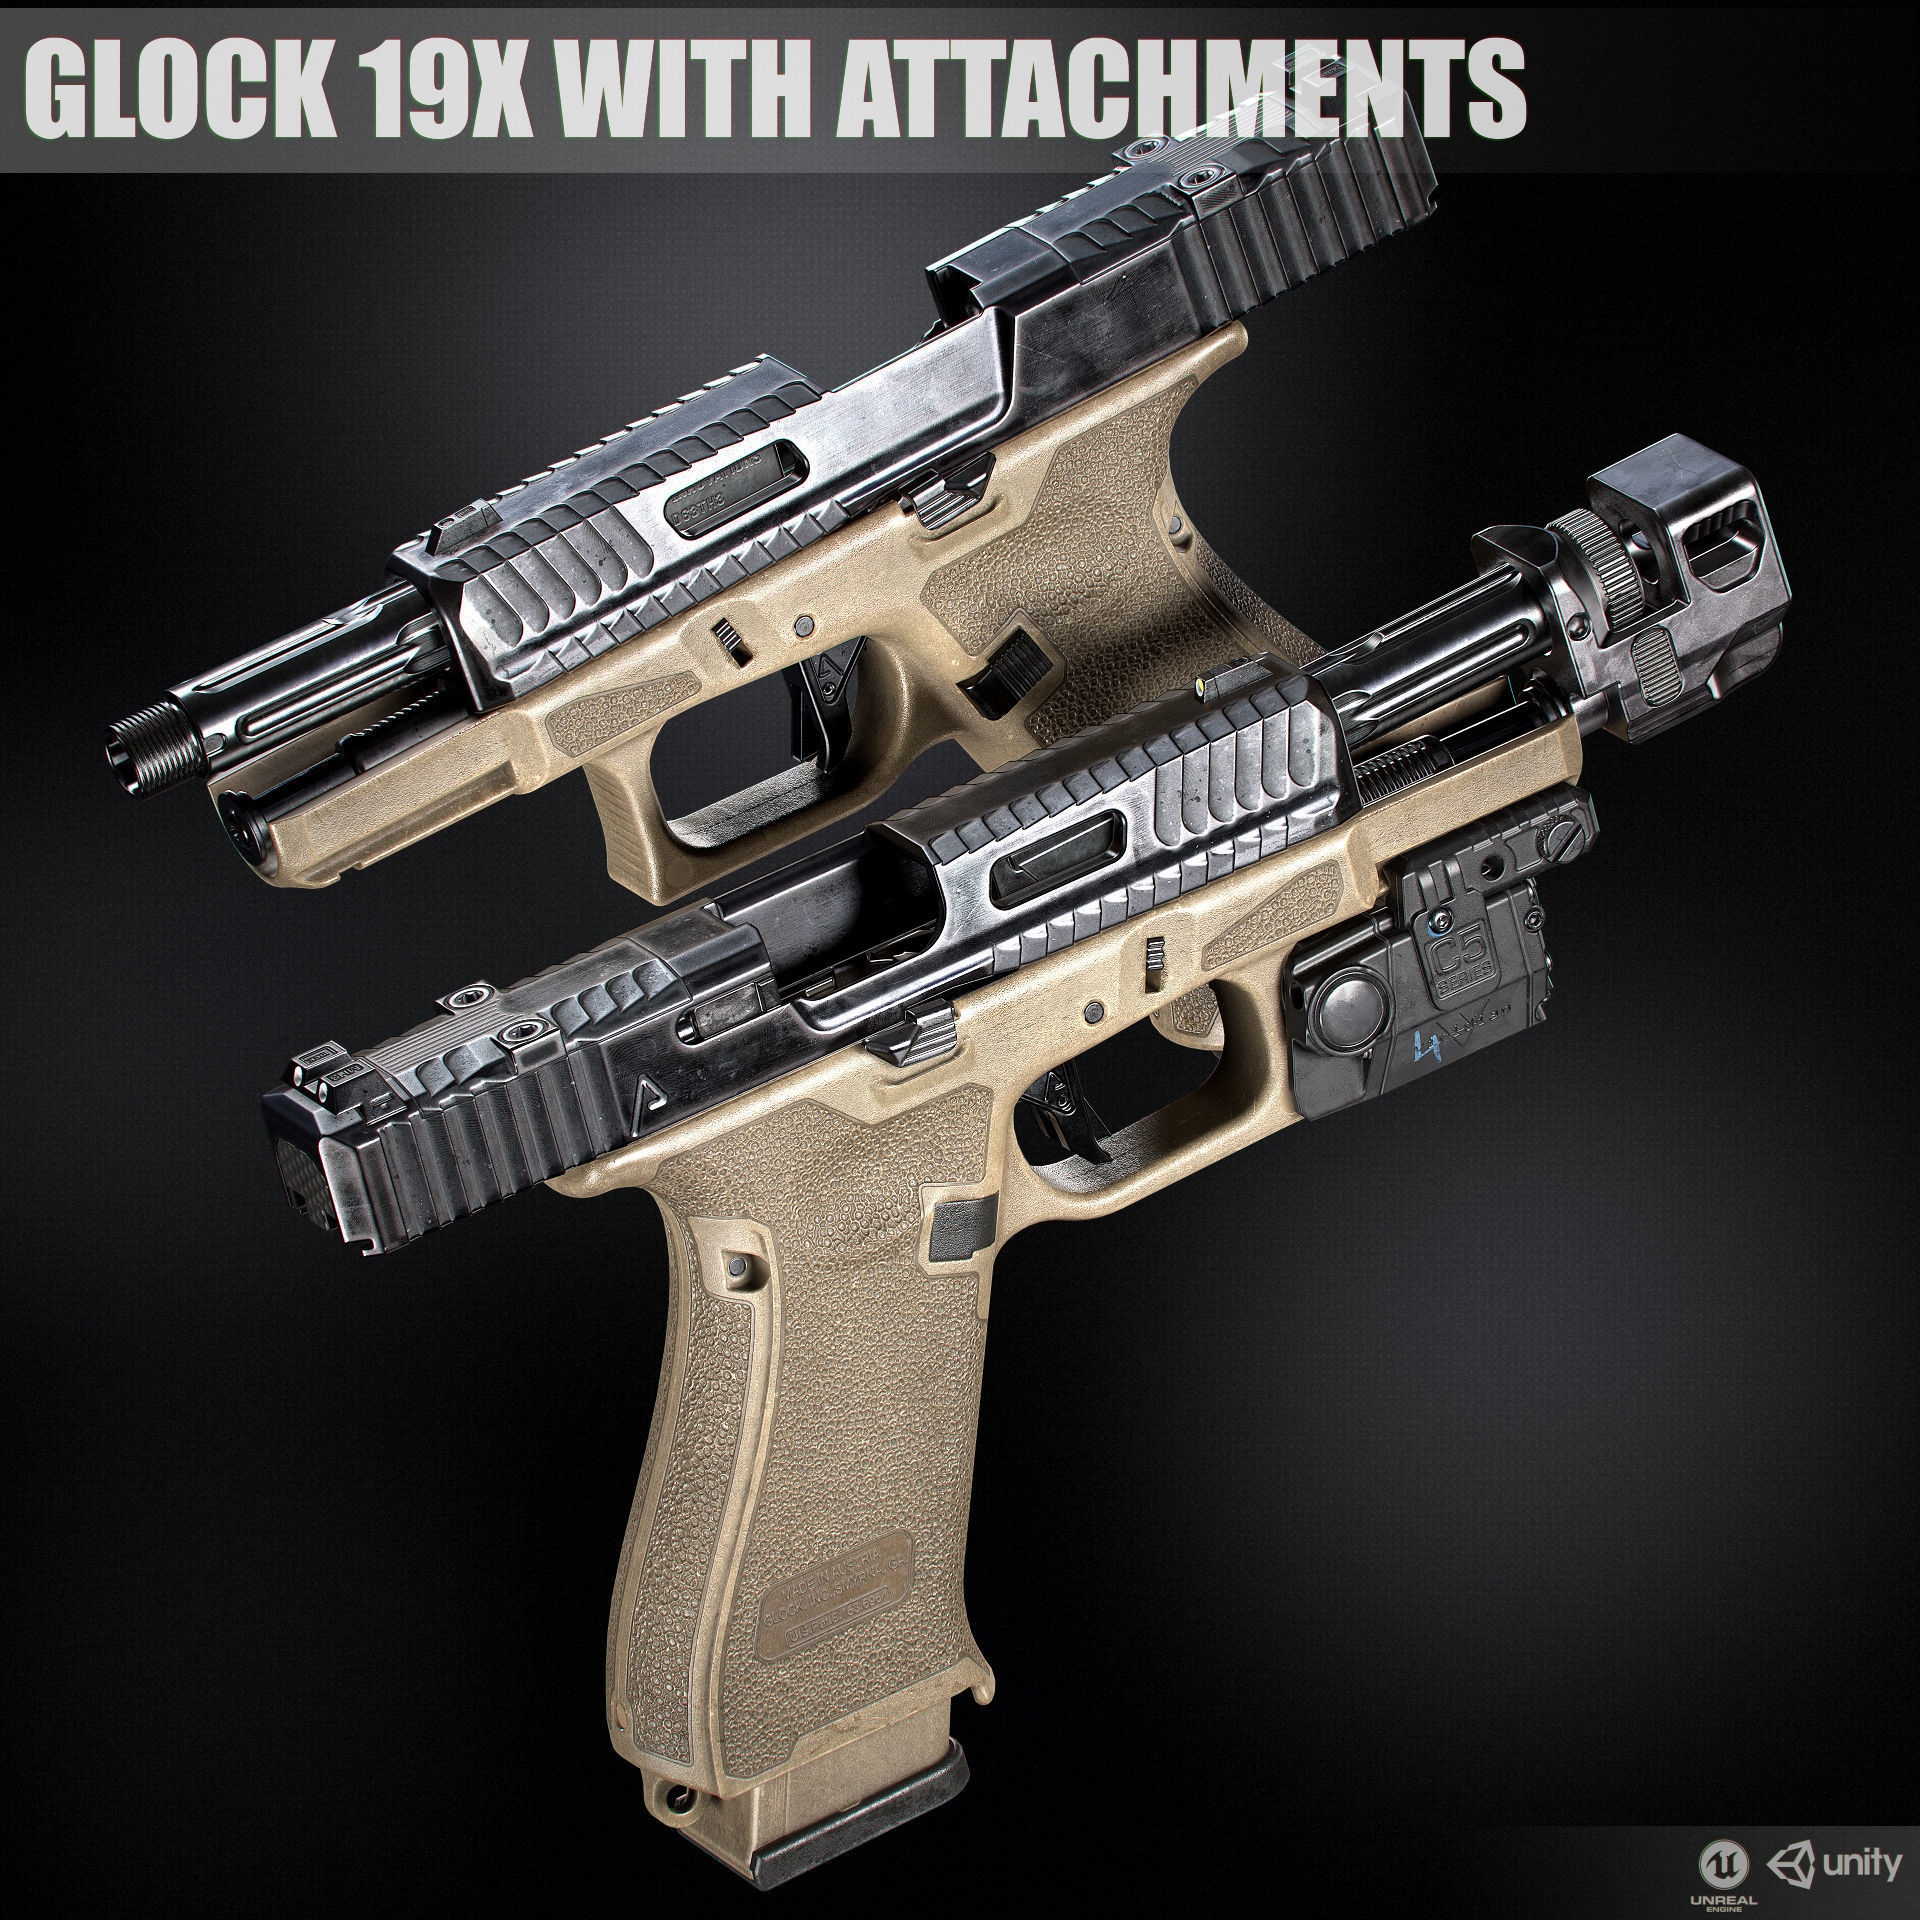 Glock 19x custom with attachments